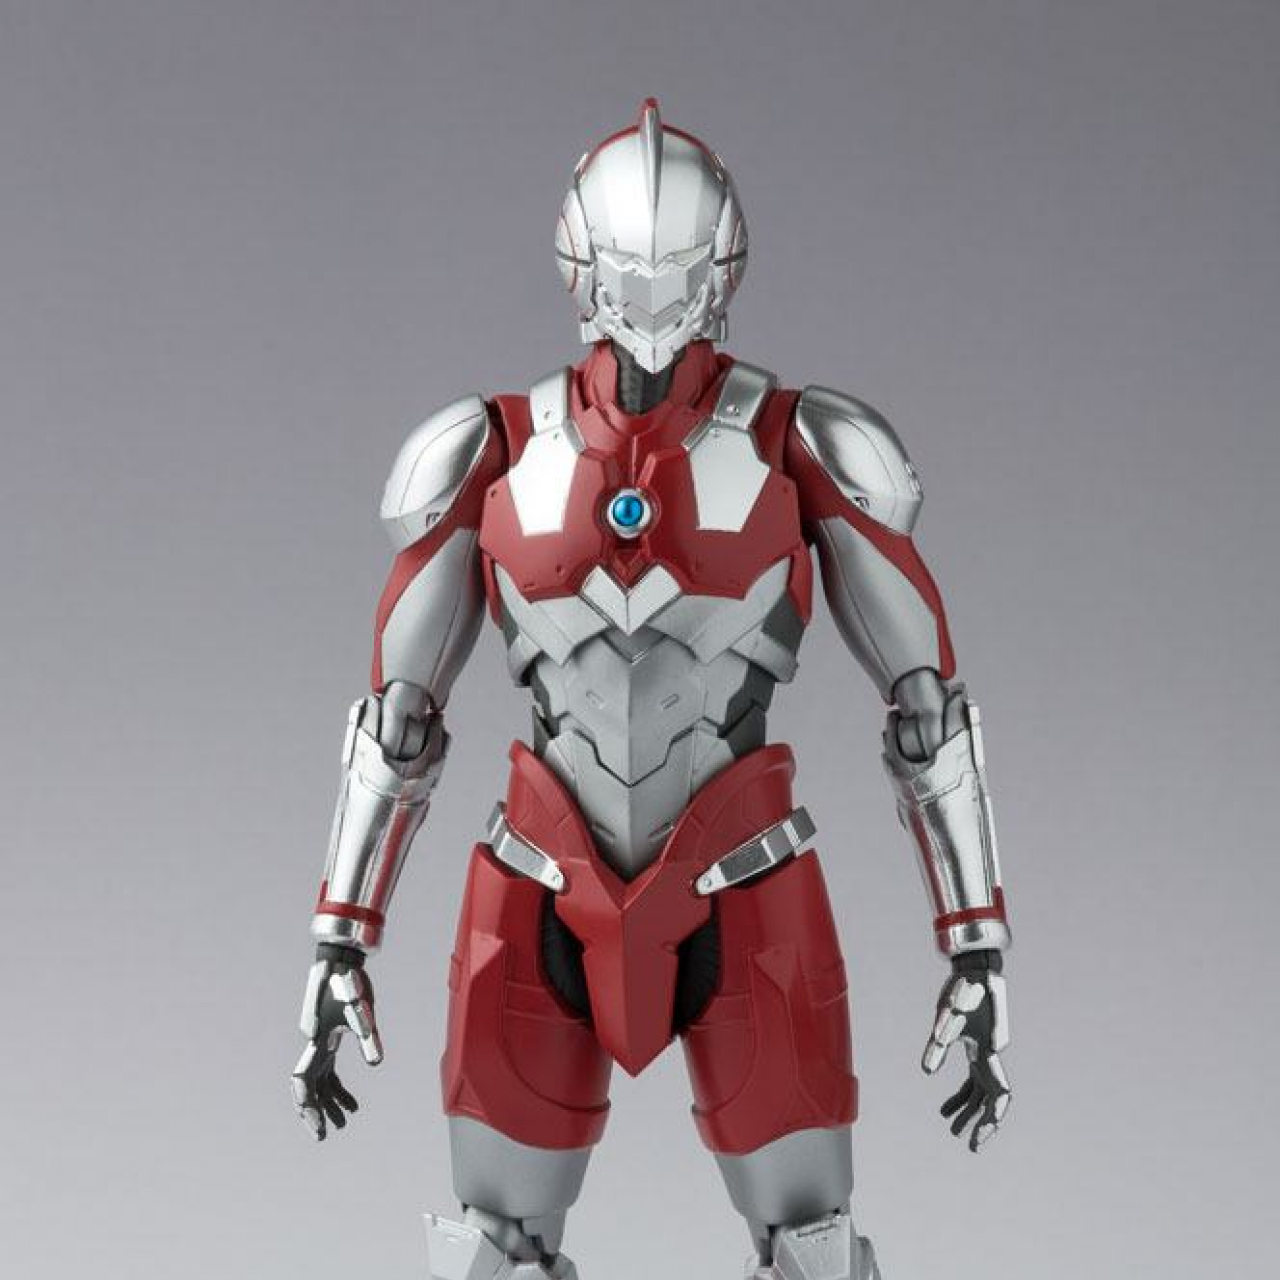 Ultraman S.H. Figuarts Action Figure Ultraman (The Animation) 16 cm